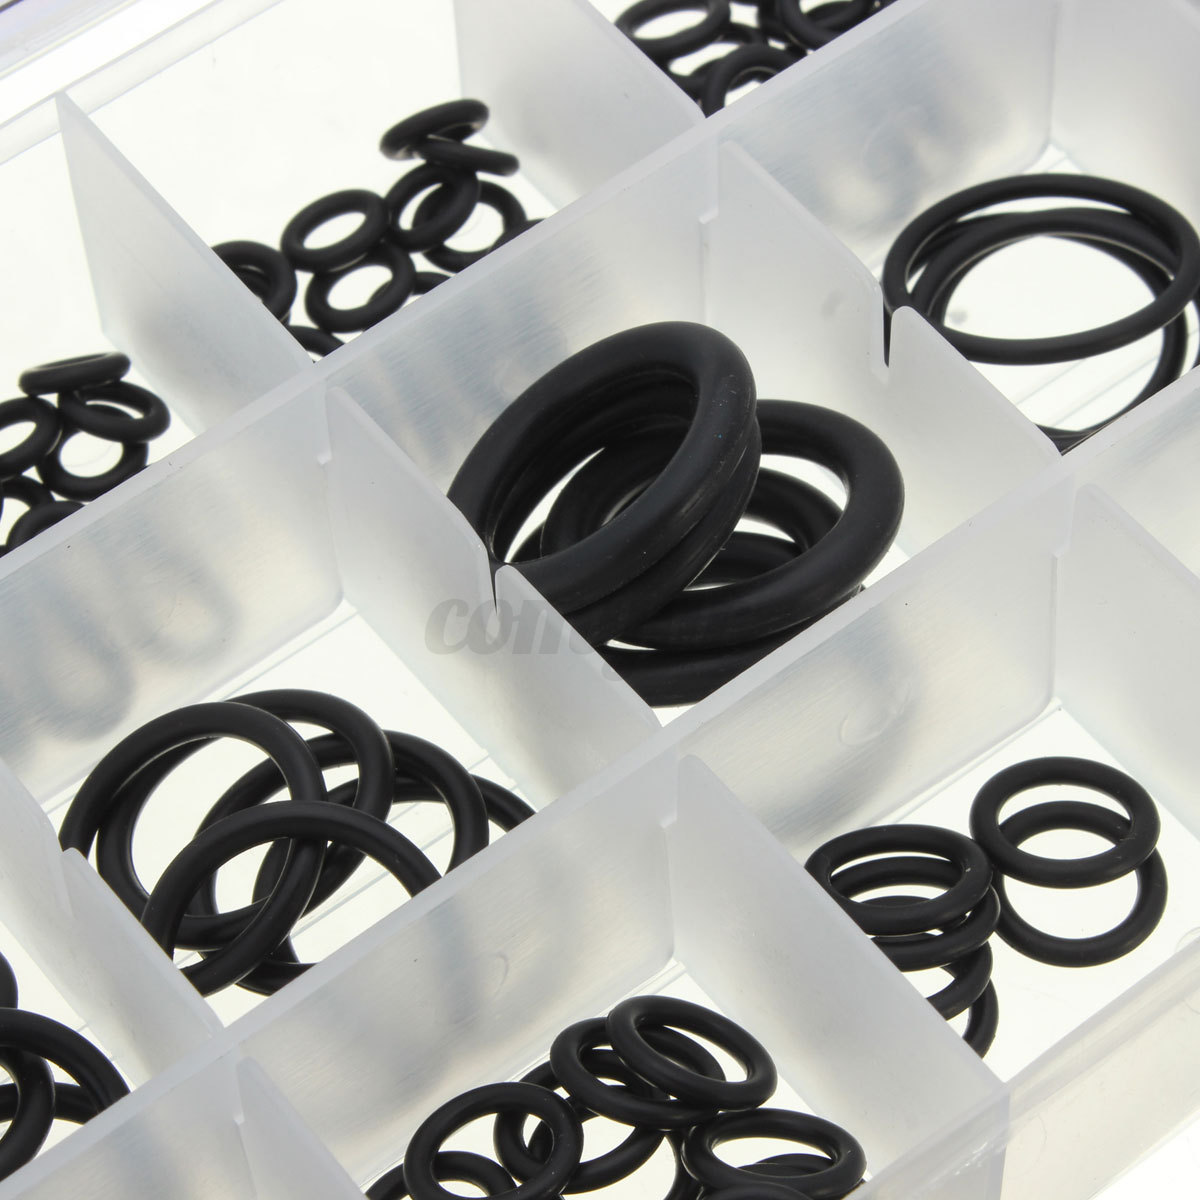 225tlg o ring assortment seal ring kit seal rubber rings. Black Bedroom Furniture Sets. Home Design Ideas